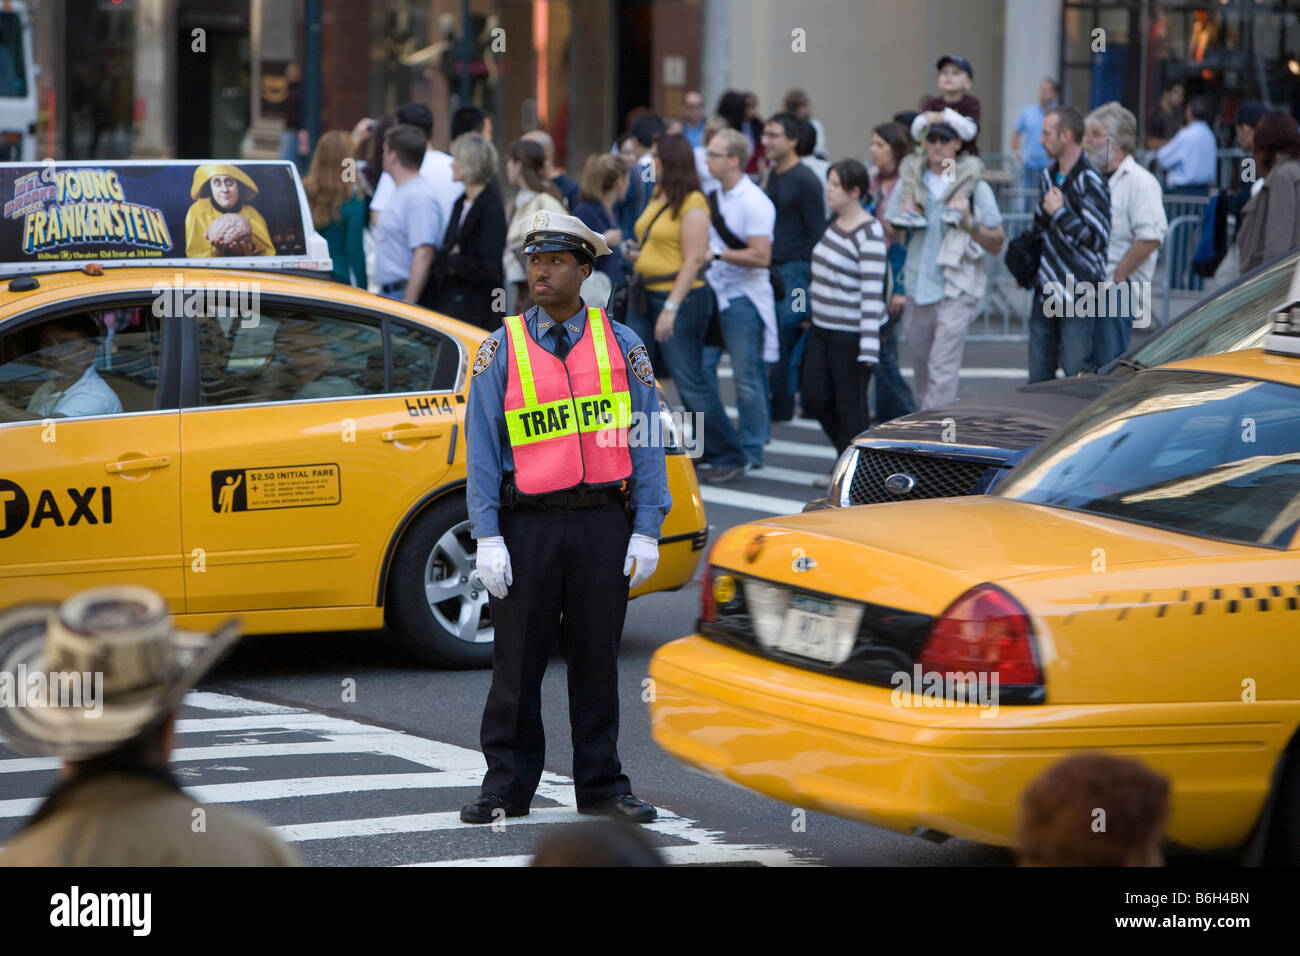 Traffic cop 42nd Street and Fifth Avwenue New York City - Stock Image